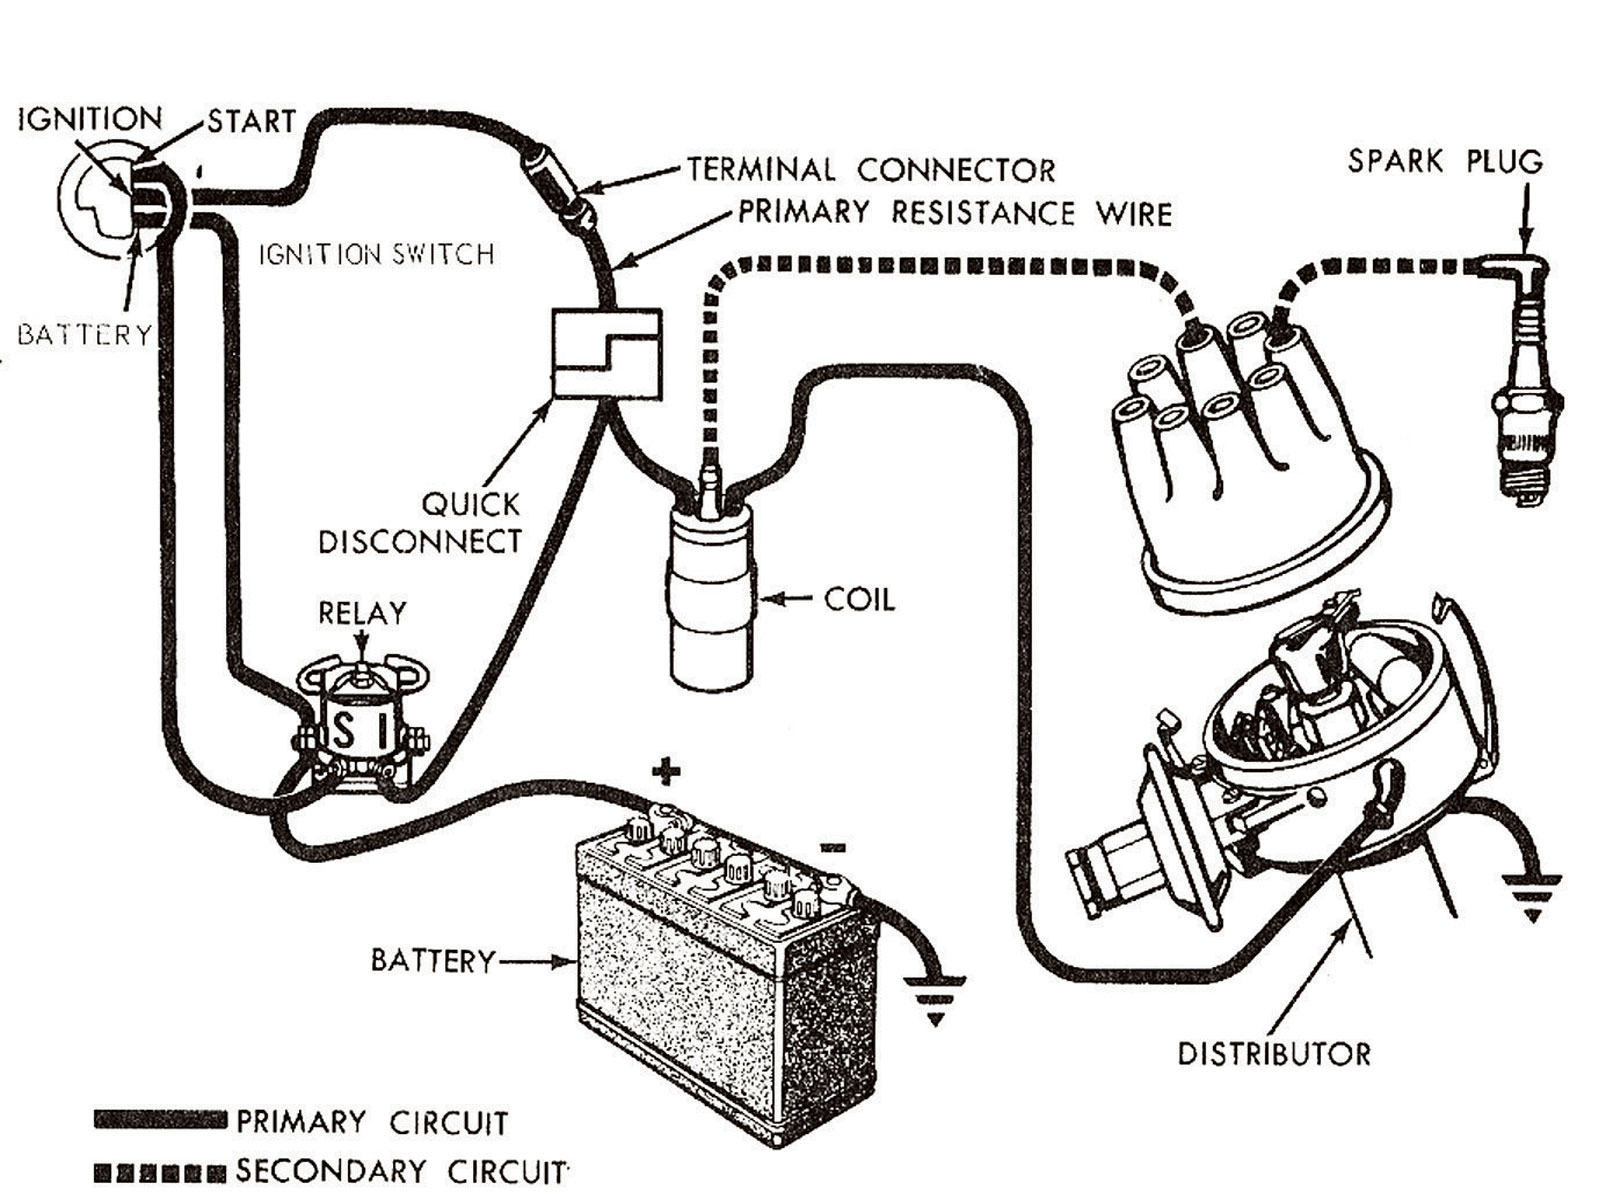 diagram of ignition system 4102 engine start and ignition system